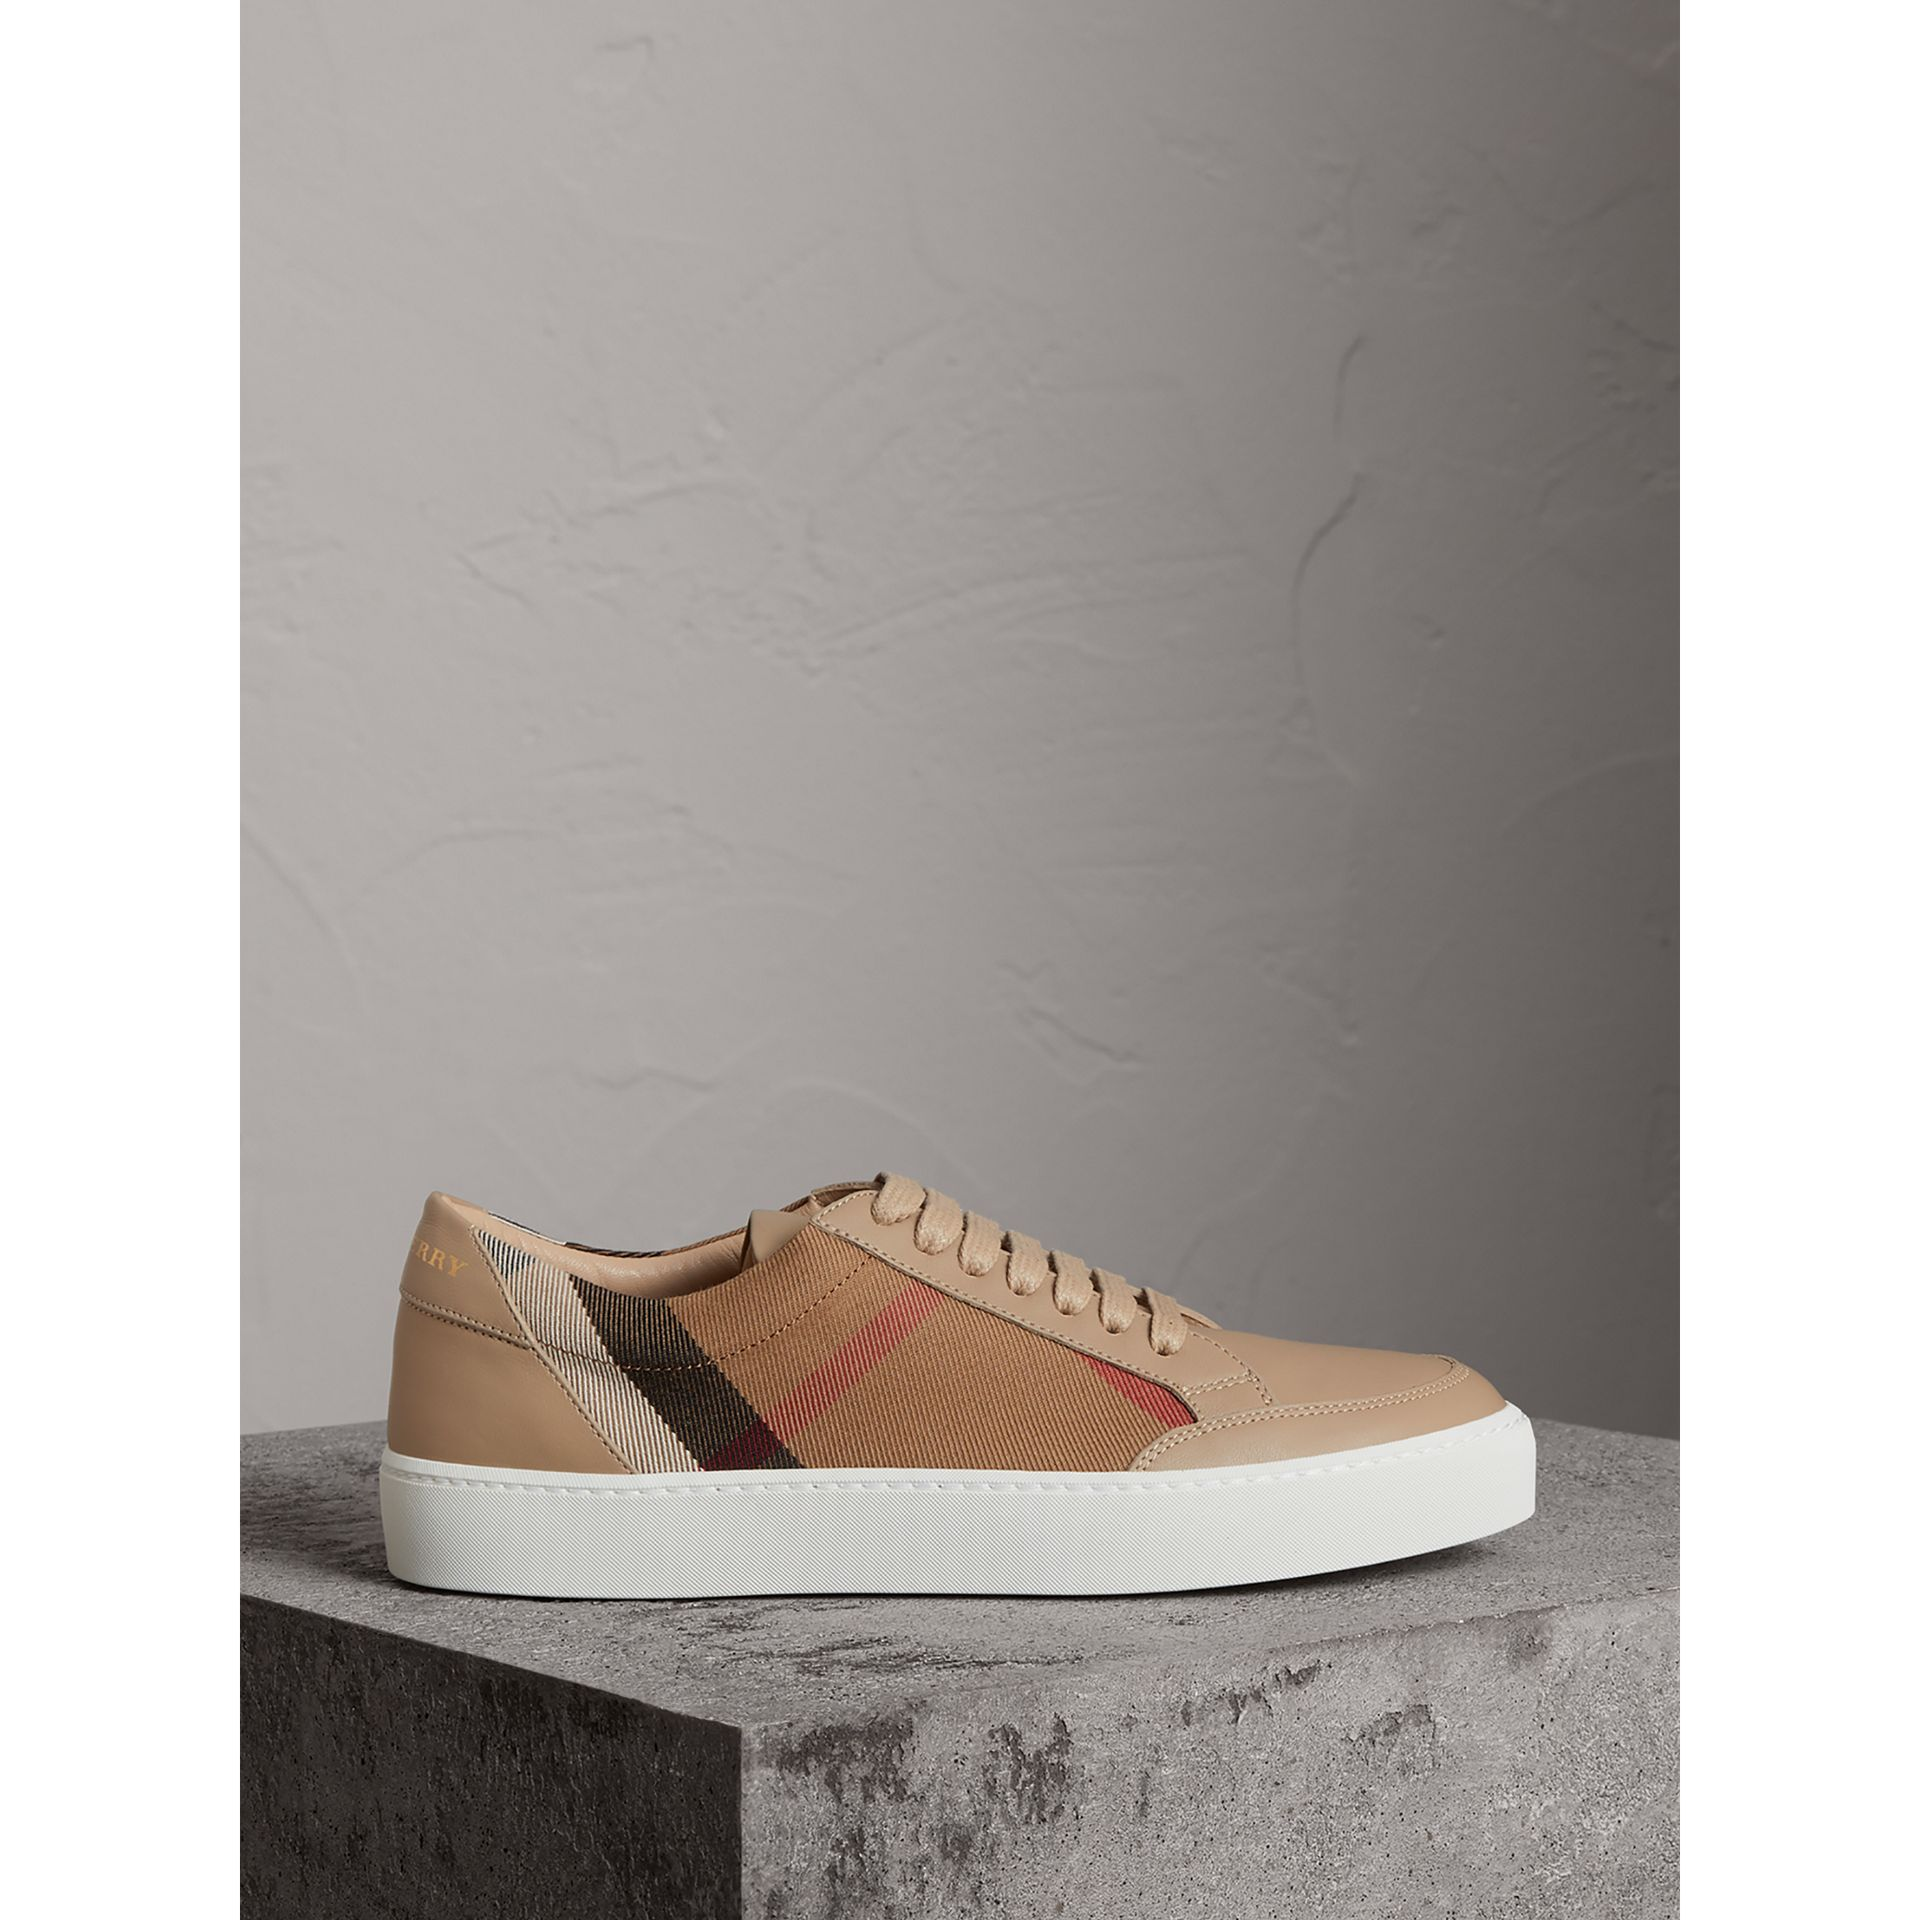 Sneakers en cuir avec détails check (House Check/nude) - Femme | Burberry - photo de la galerie 4